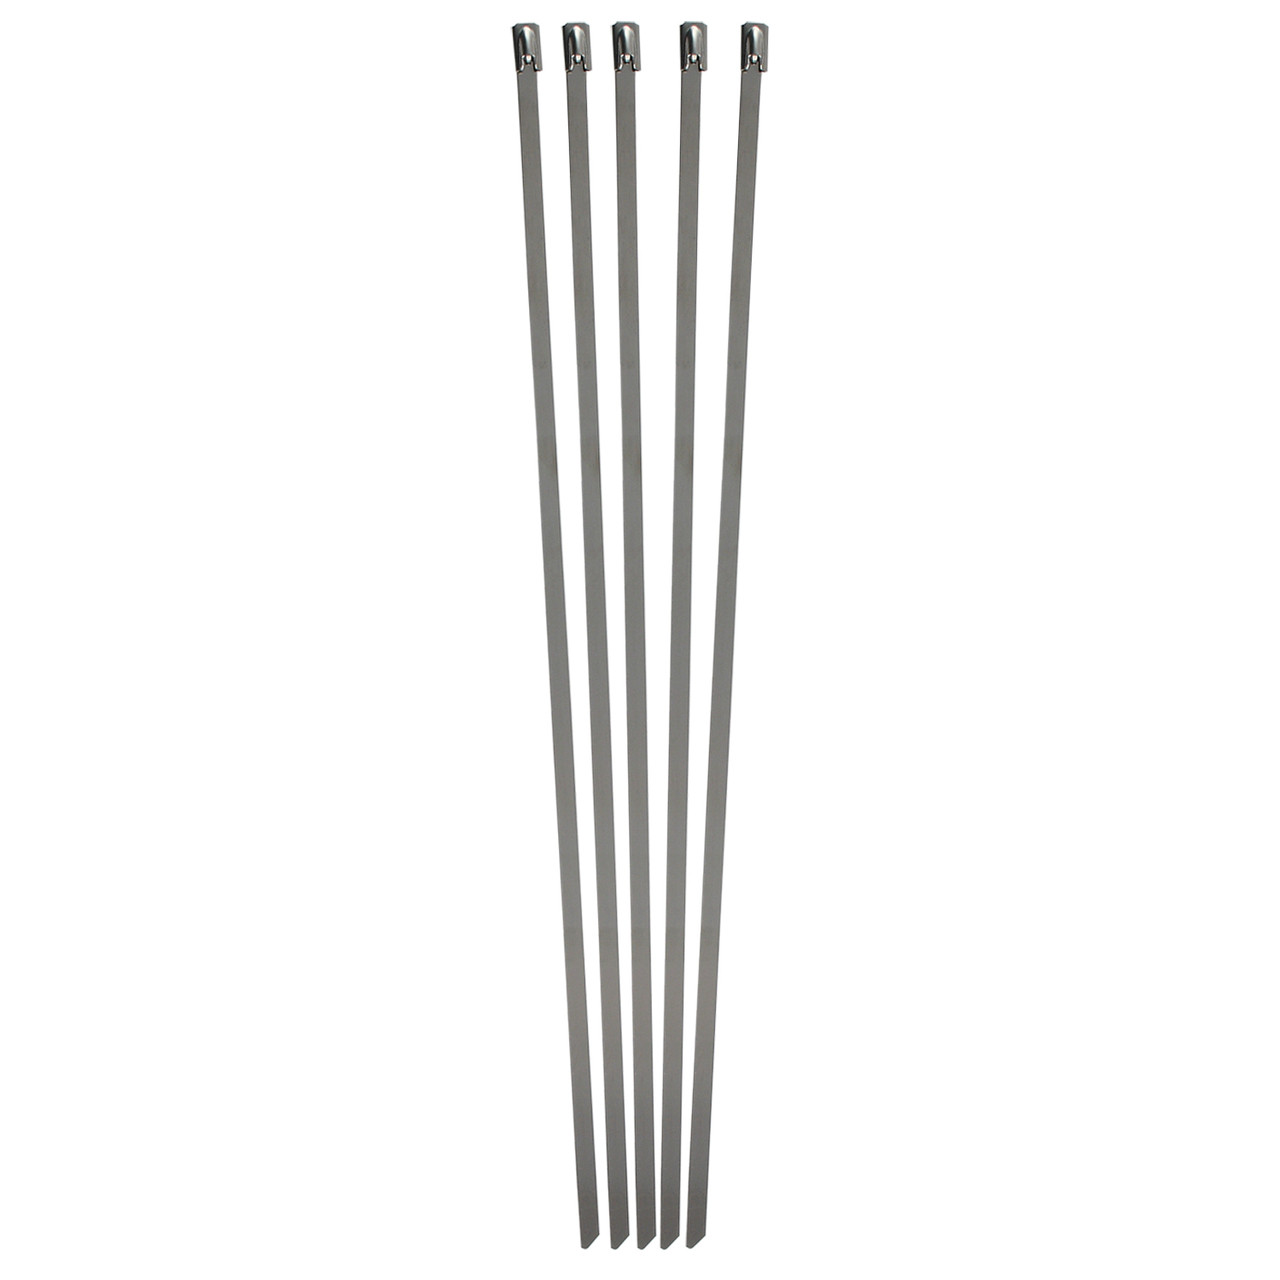 Pilot Automotive 10 Stainless Steel Wire Ties Assortment 11 ...